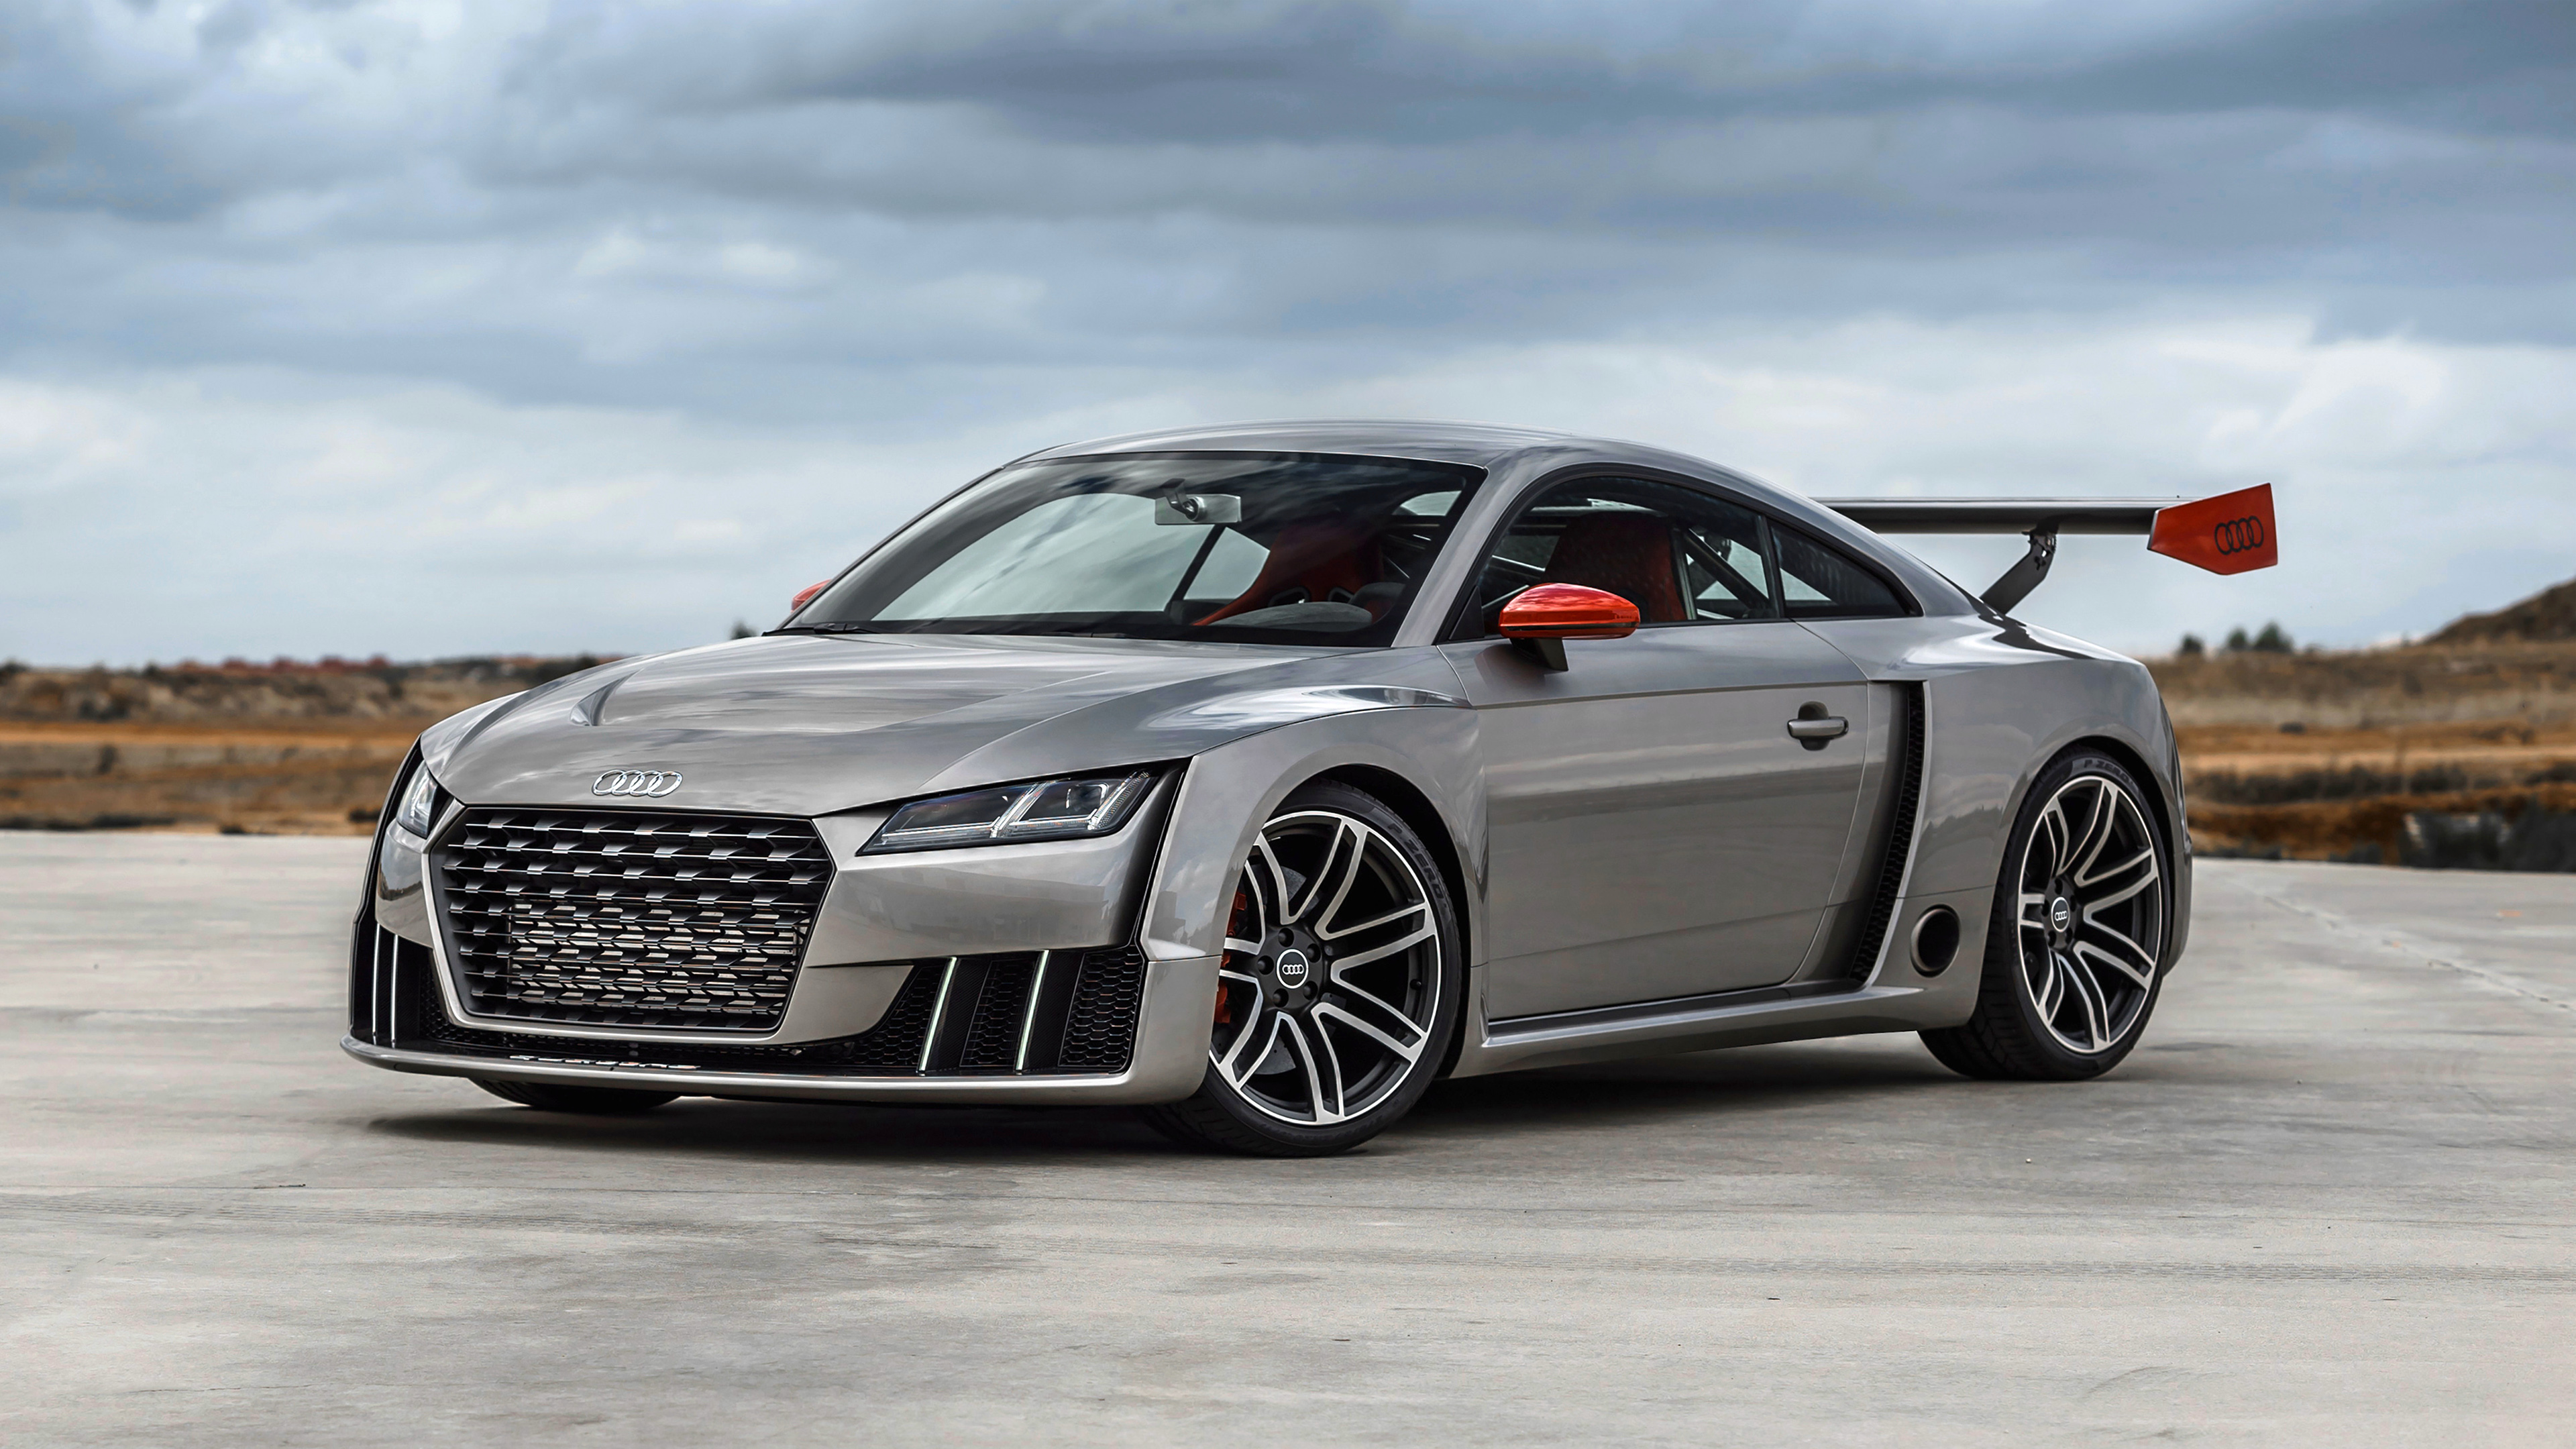 Audi Tt Rs Wallpaper Wallpapersafari